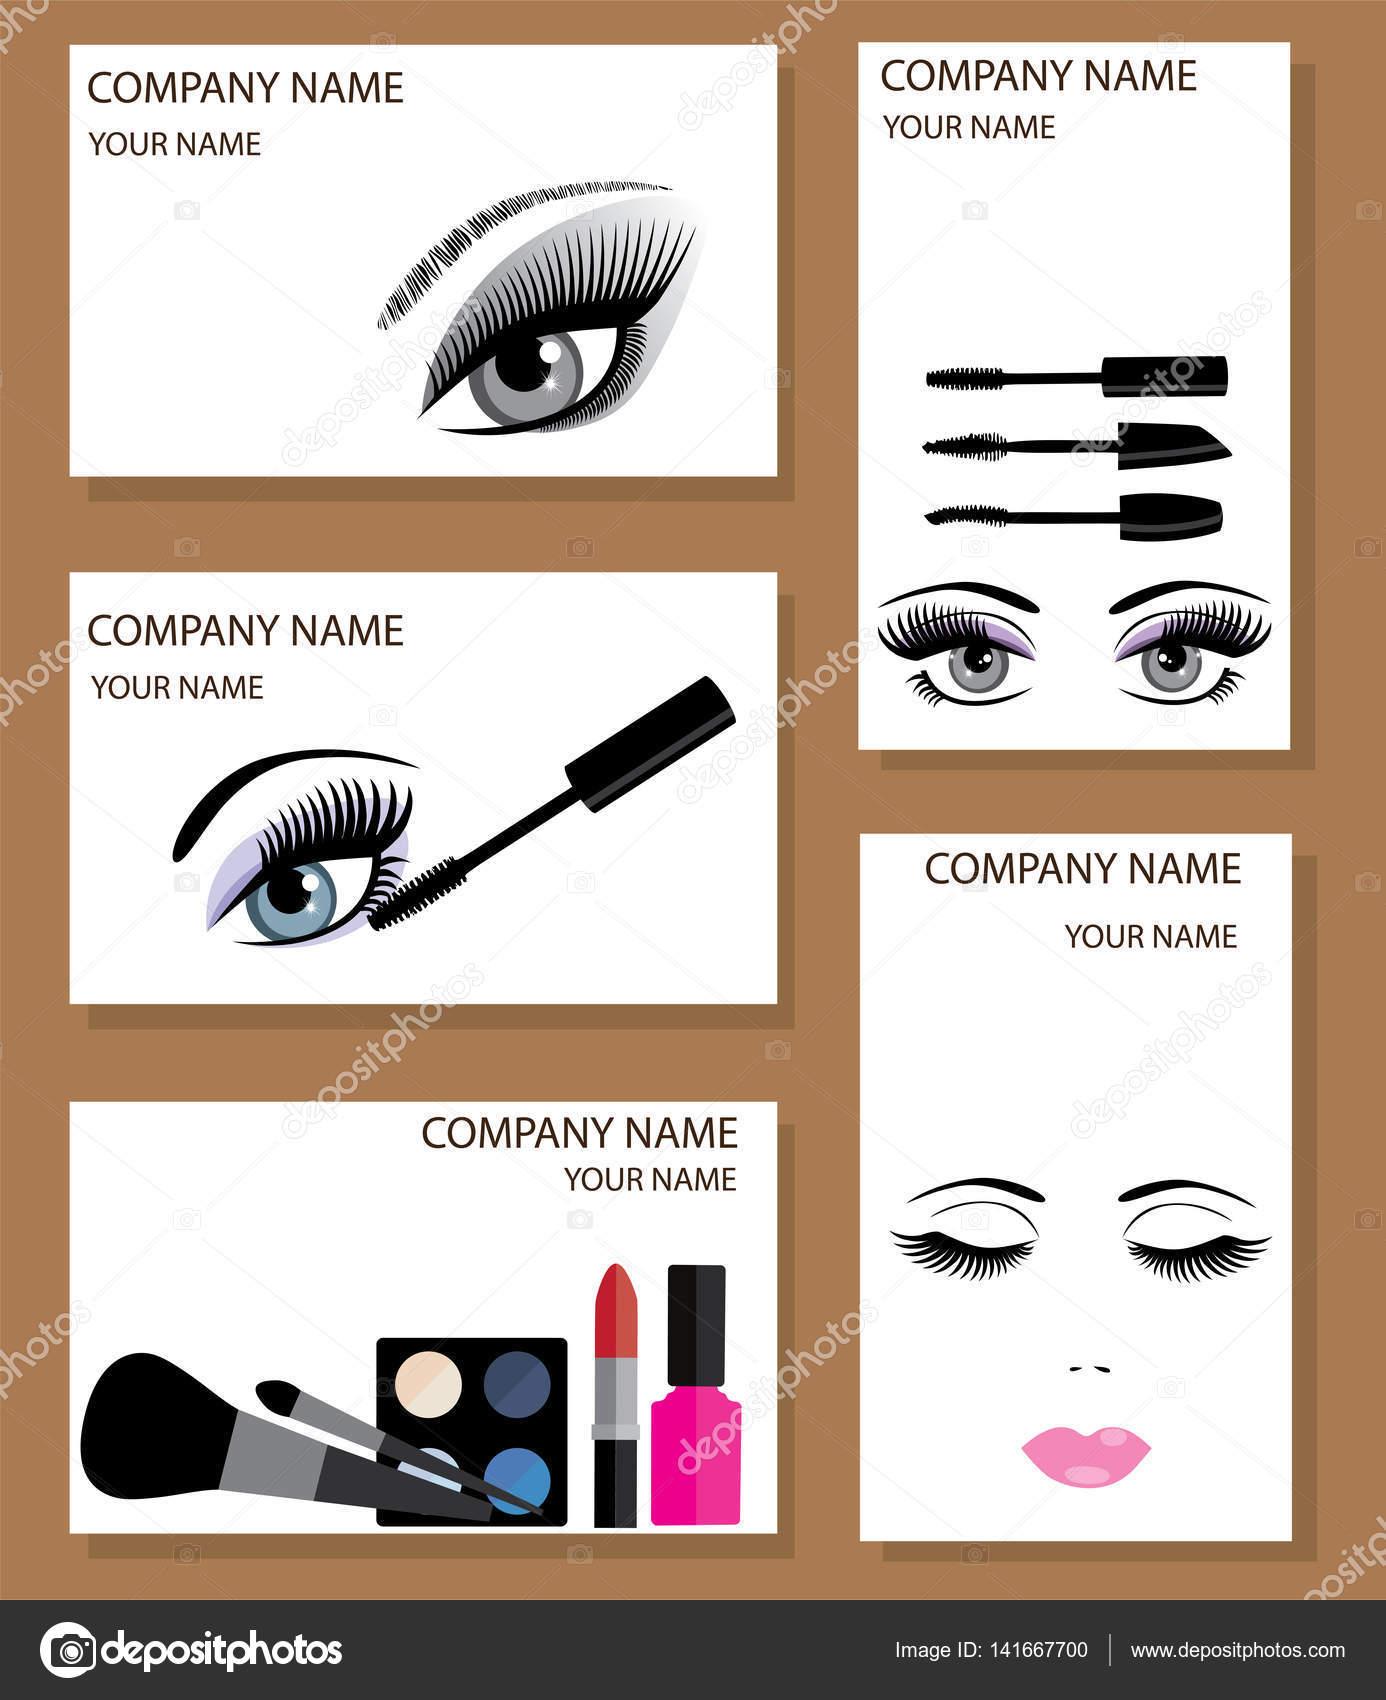 Vector Make Up Business Cards Stock Vector C Lilac Design 141667700